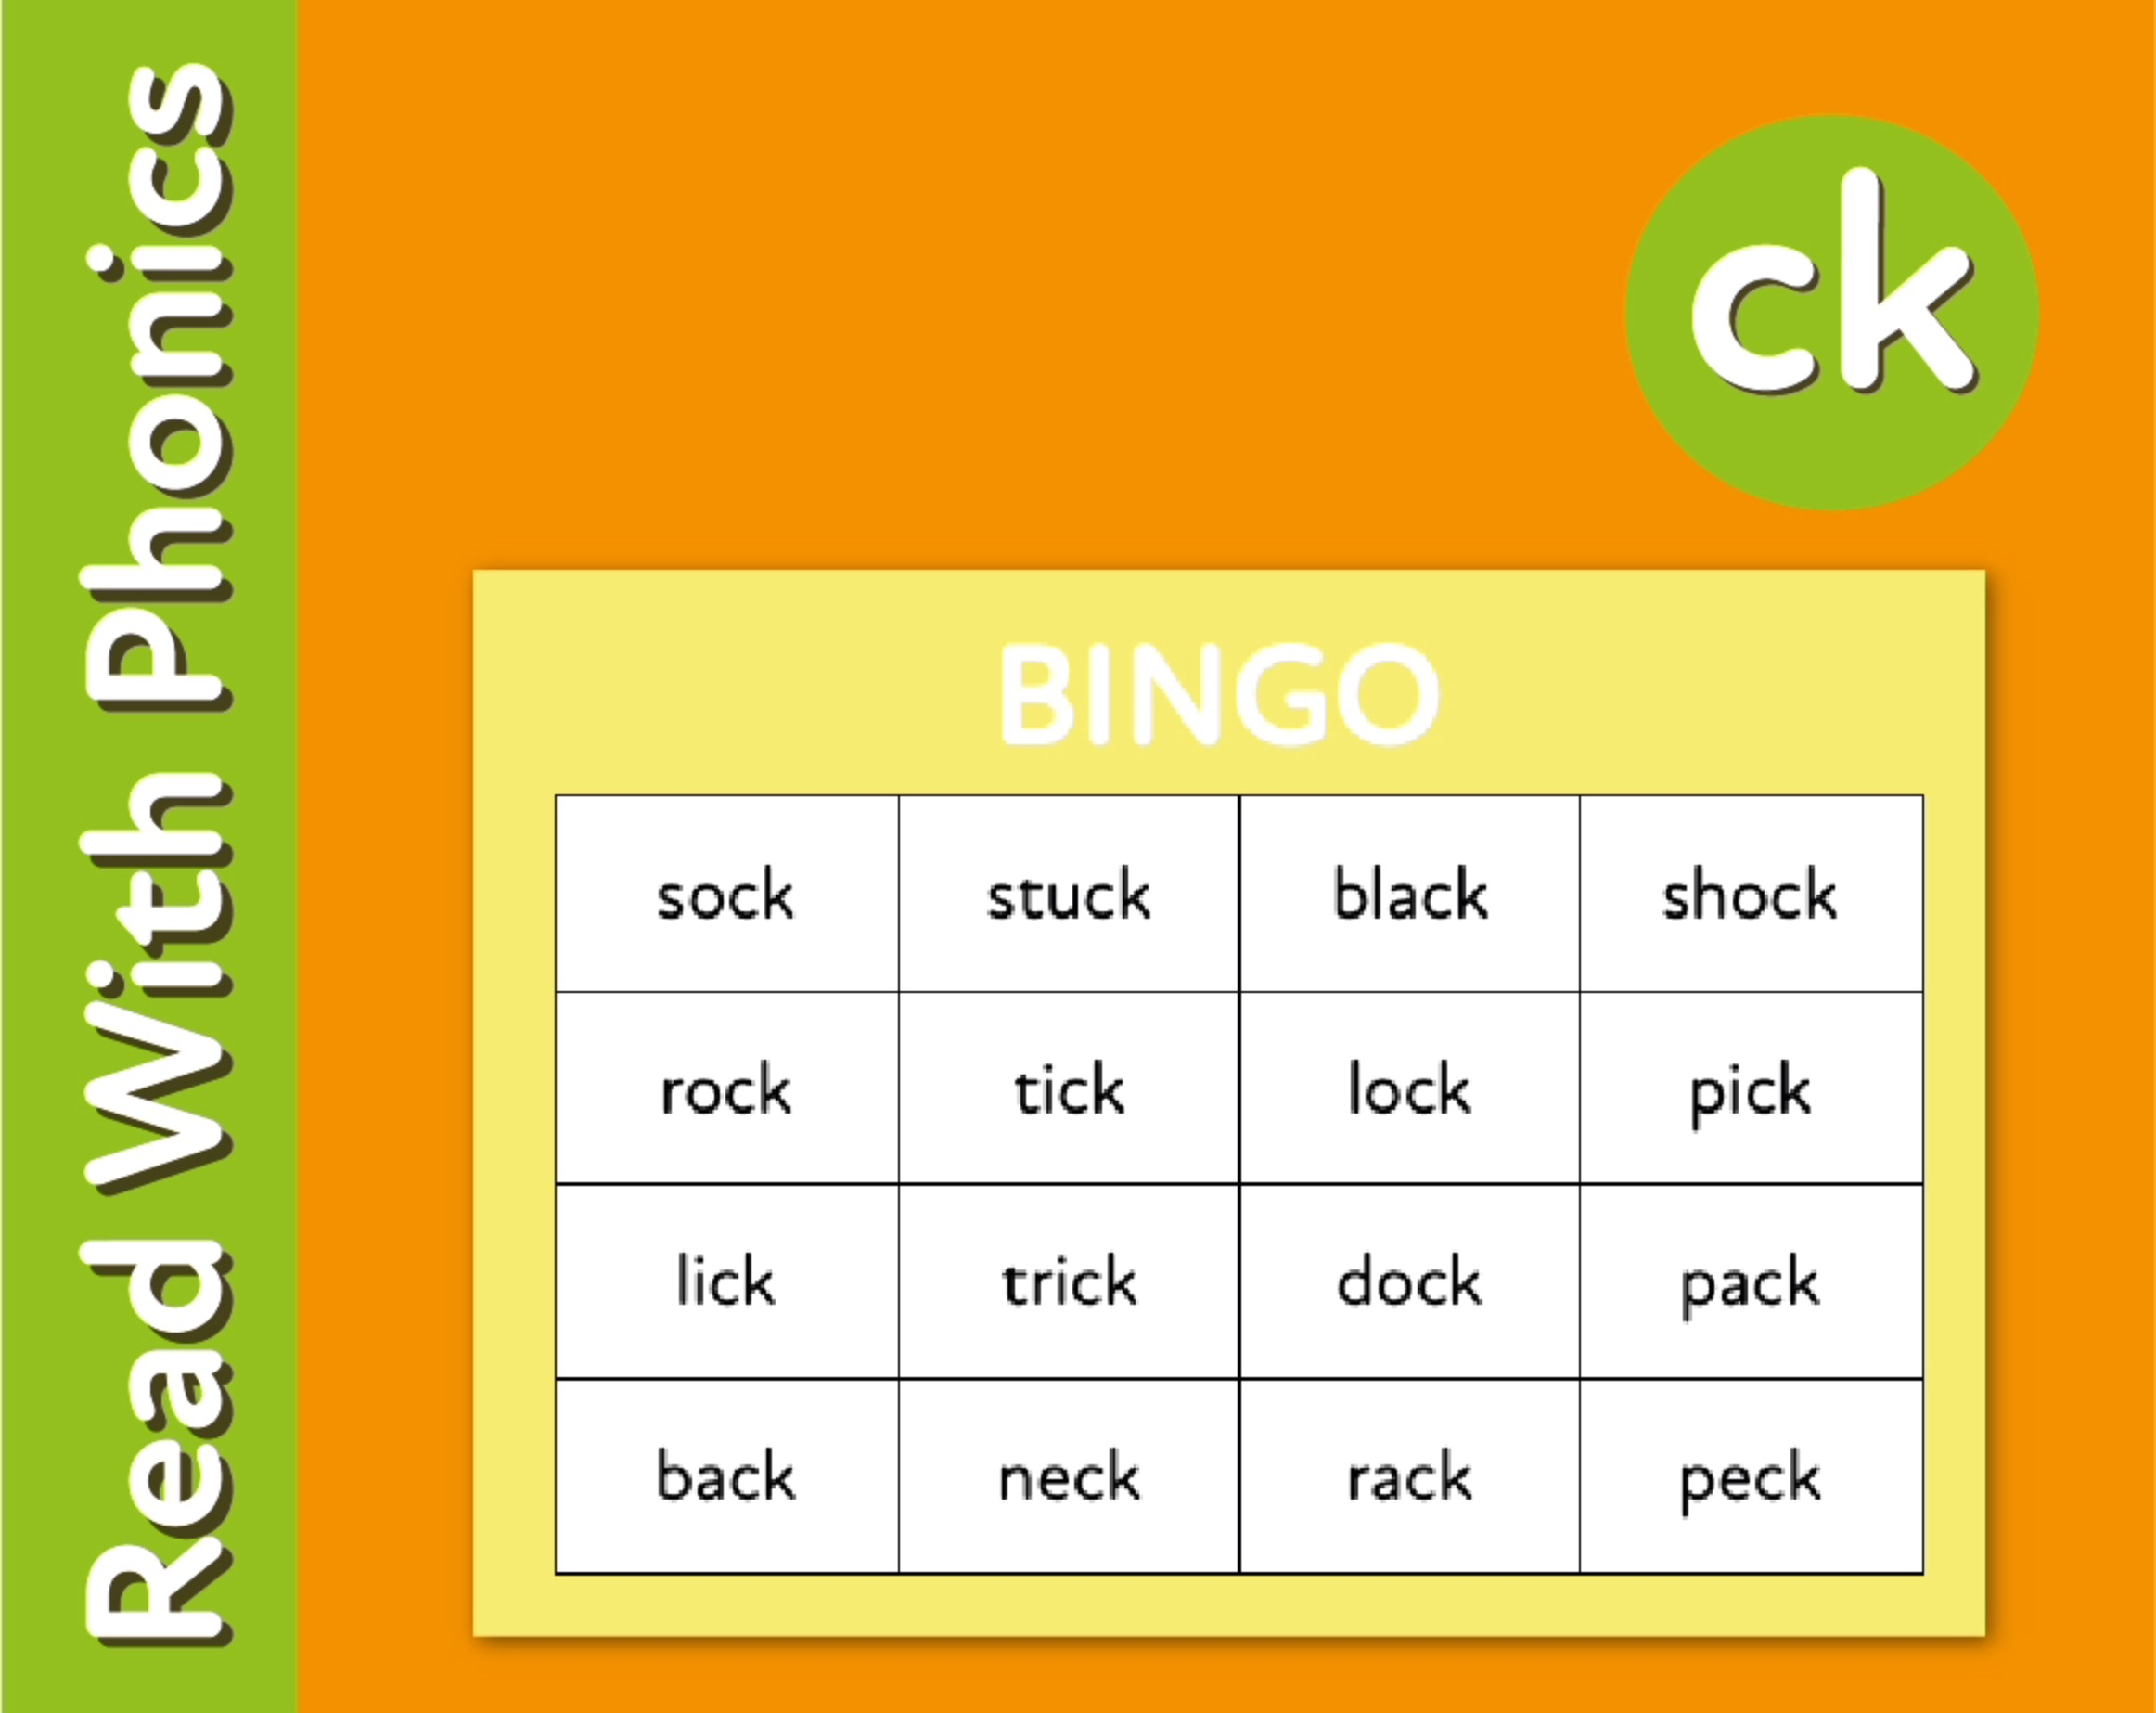 Play Bingo And Snap To Reinforce The Phonic Sound 'ck' (3 +)